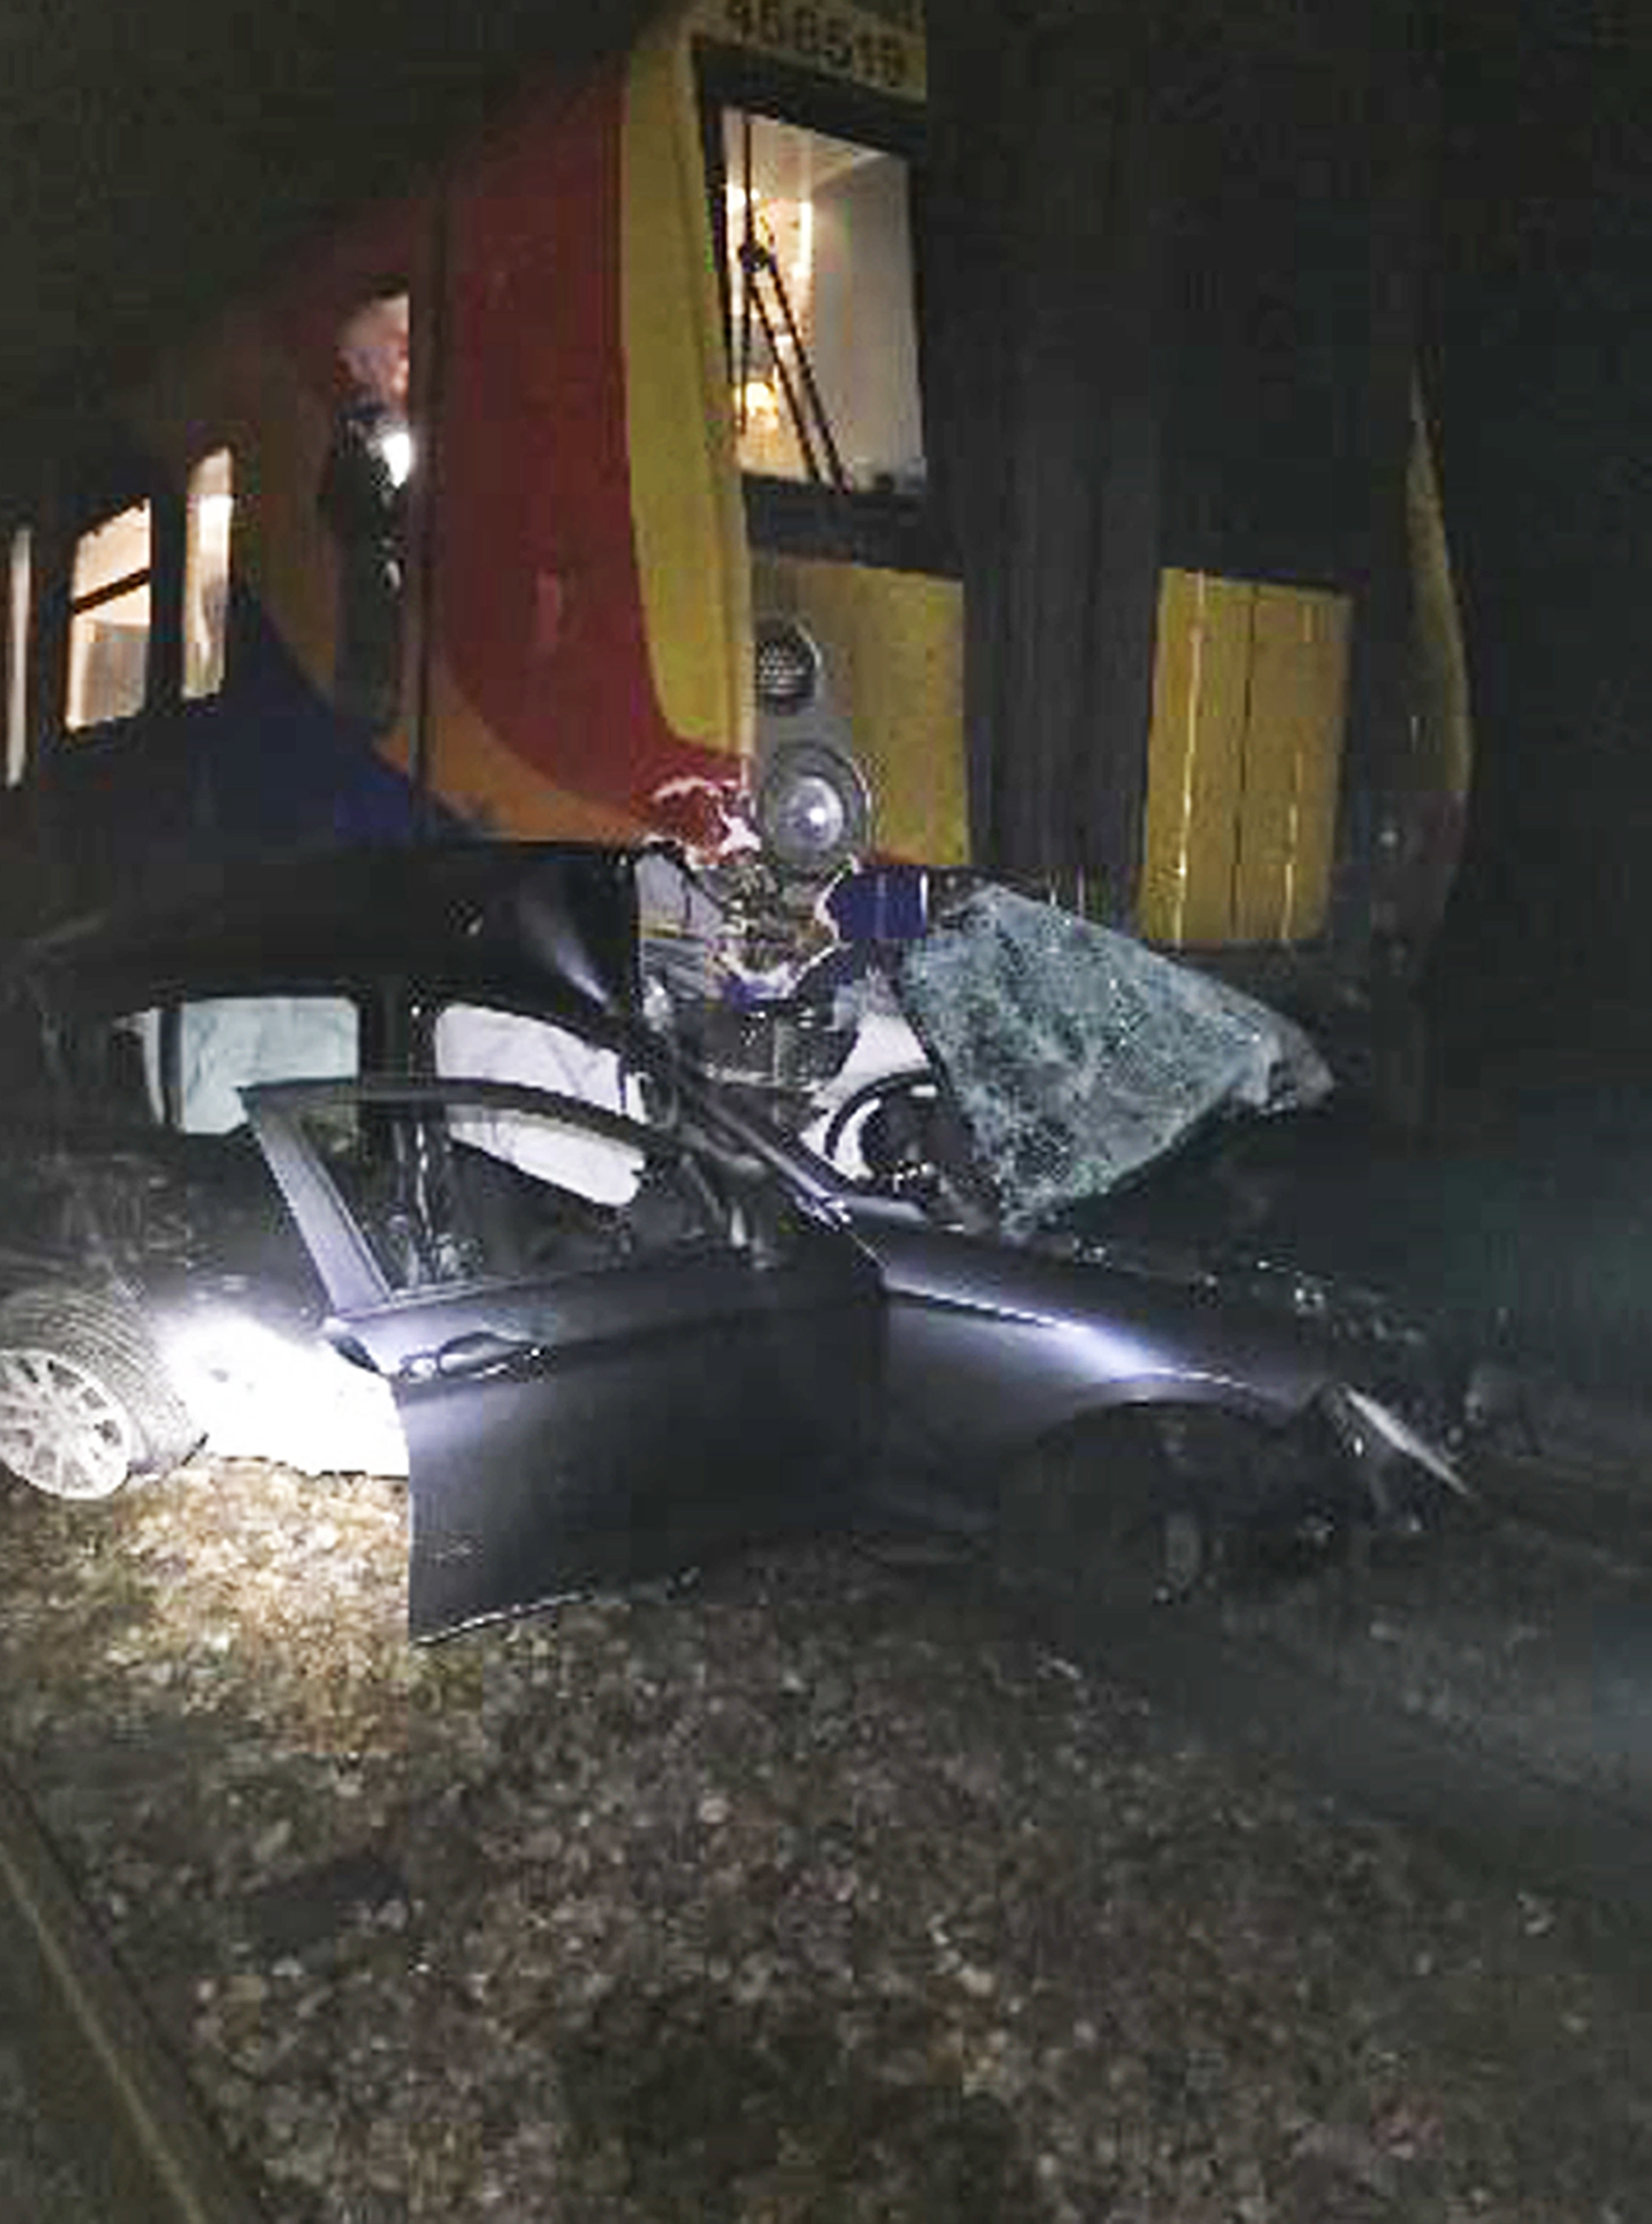 The driver escaped from the vehicle before the collision occurred at a level crossing in Wokingham, Berkshire (PA)